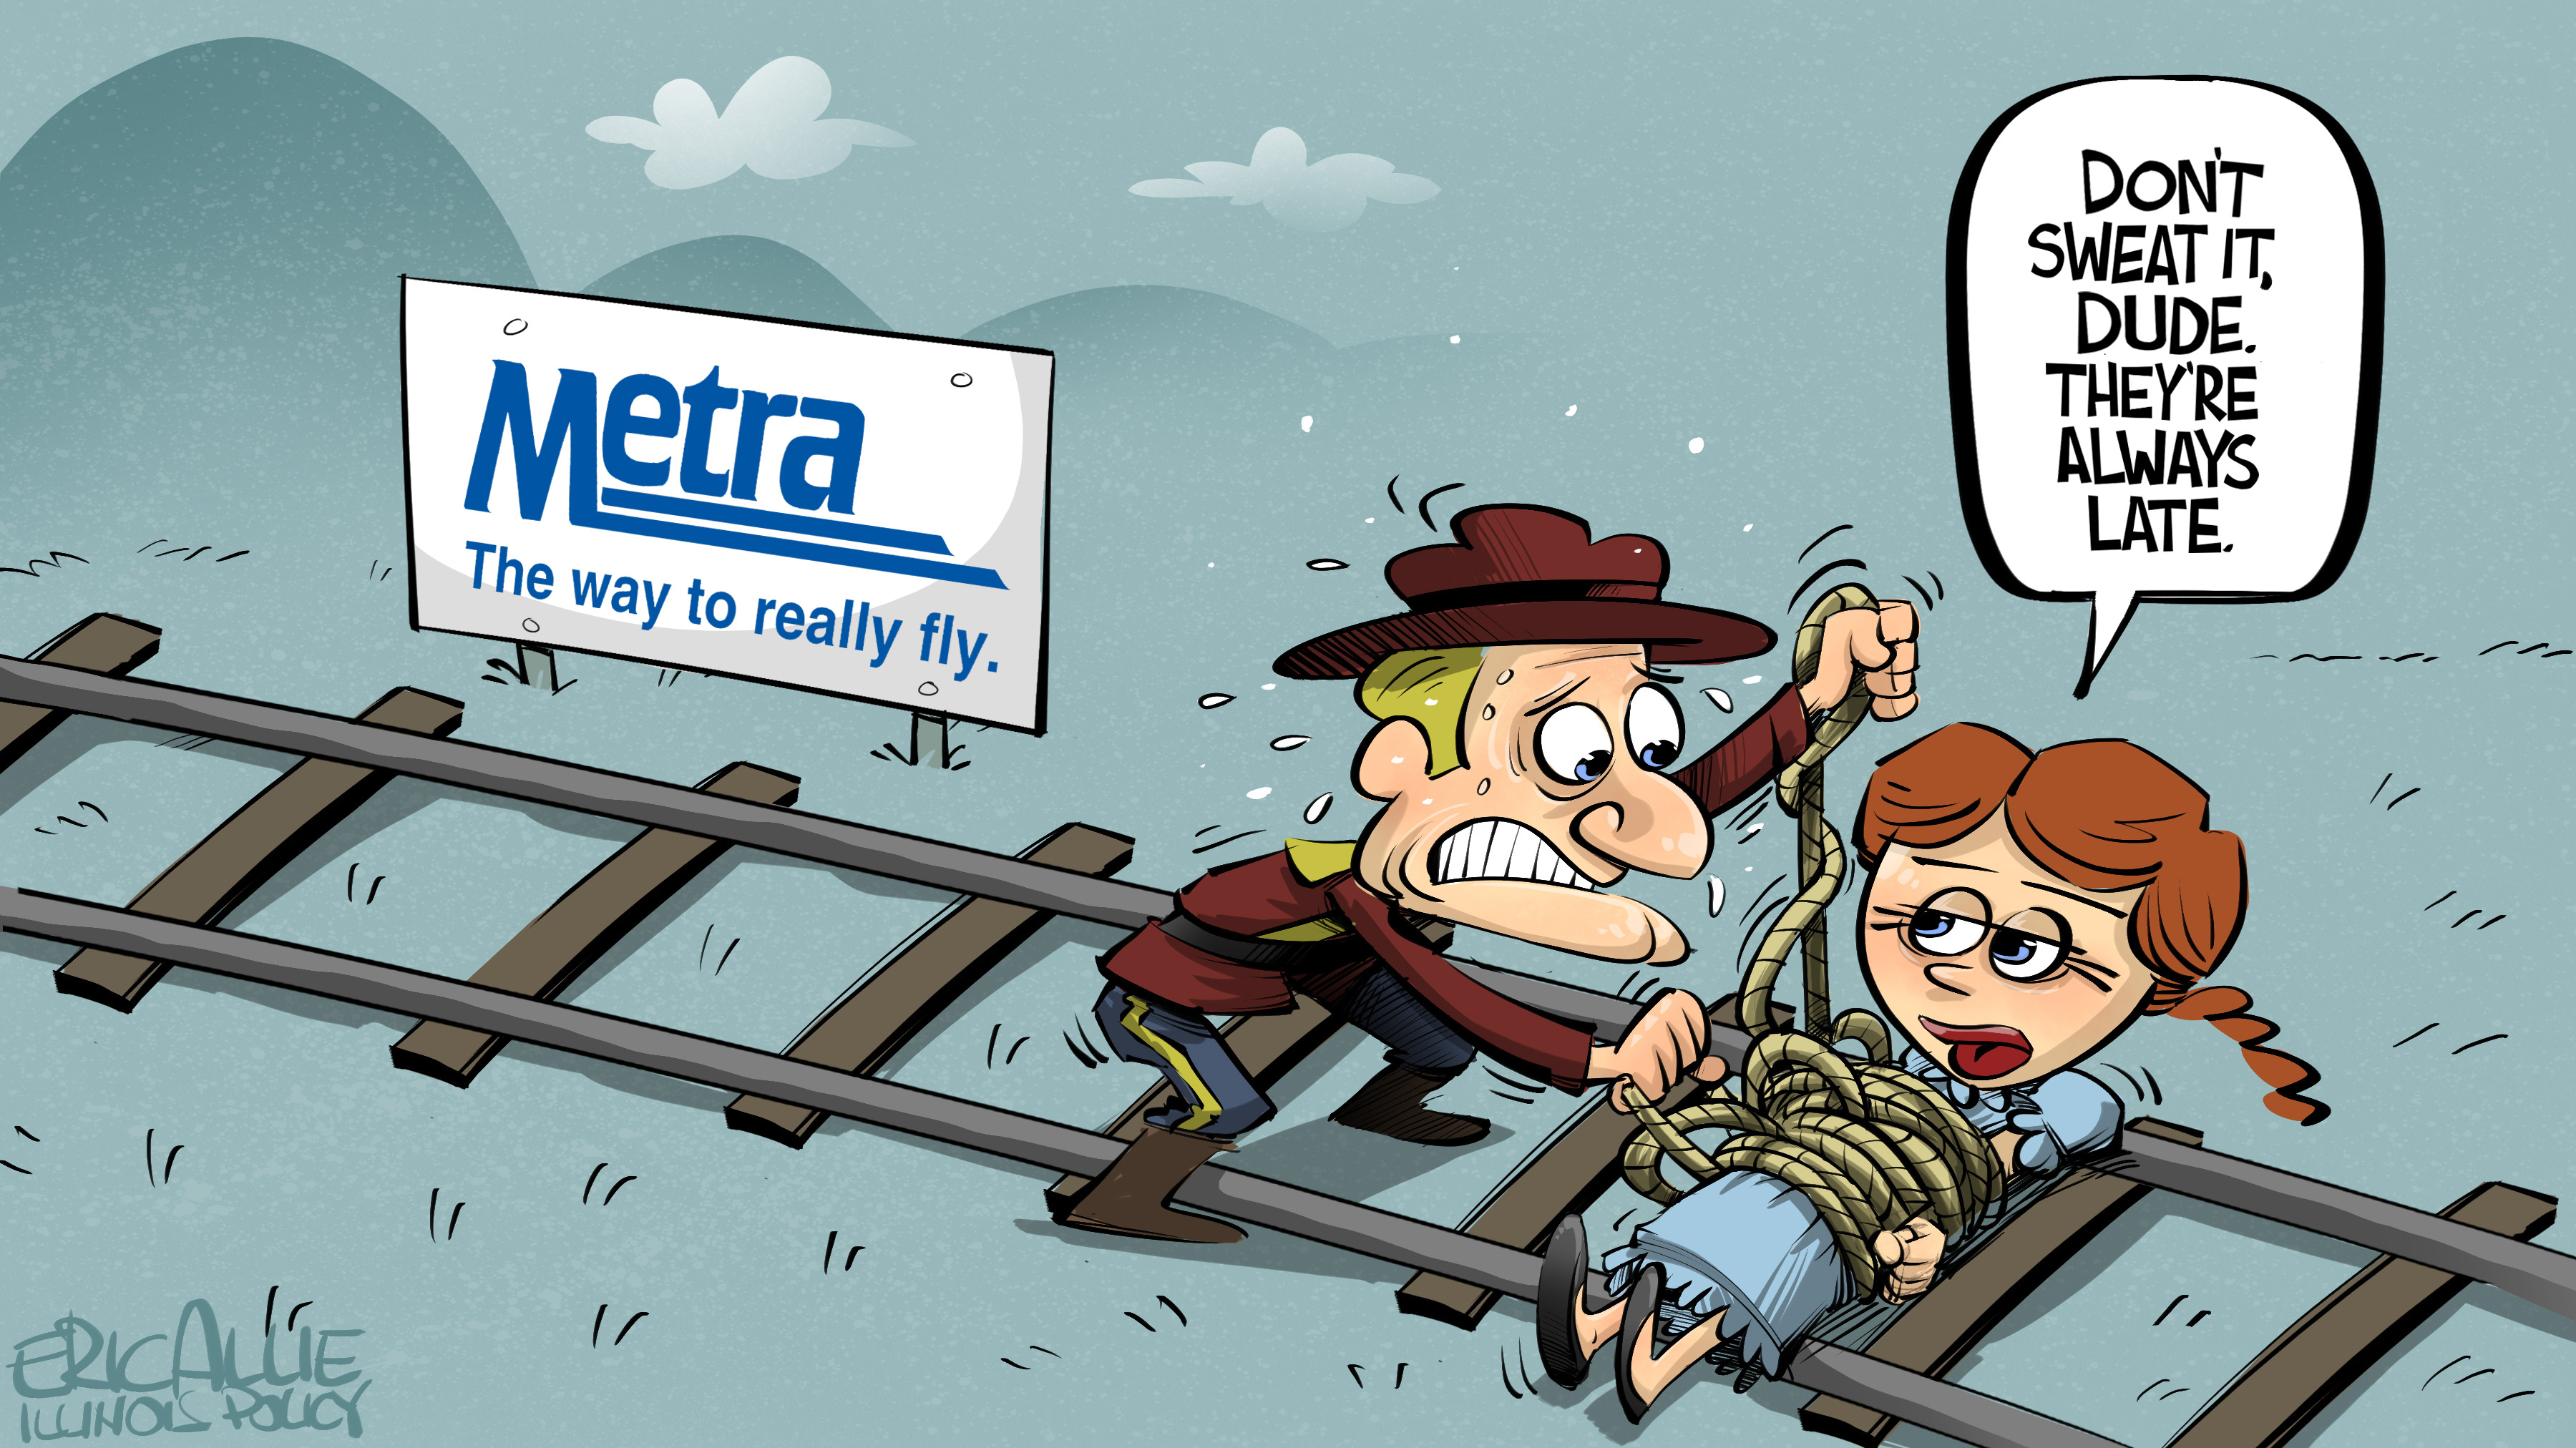 Metra ... the way to really fly